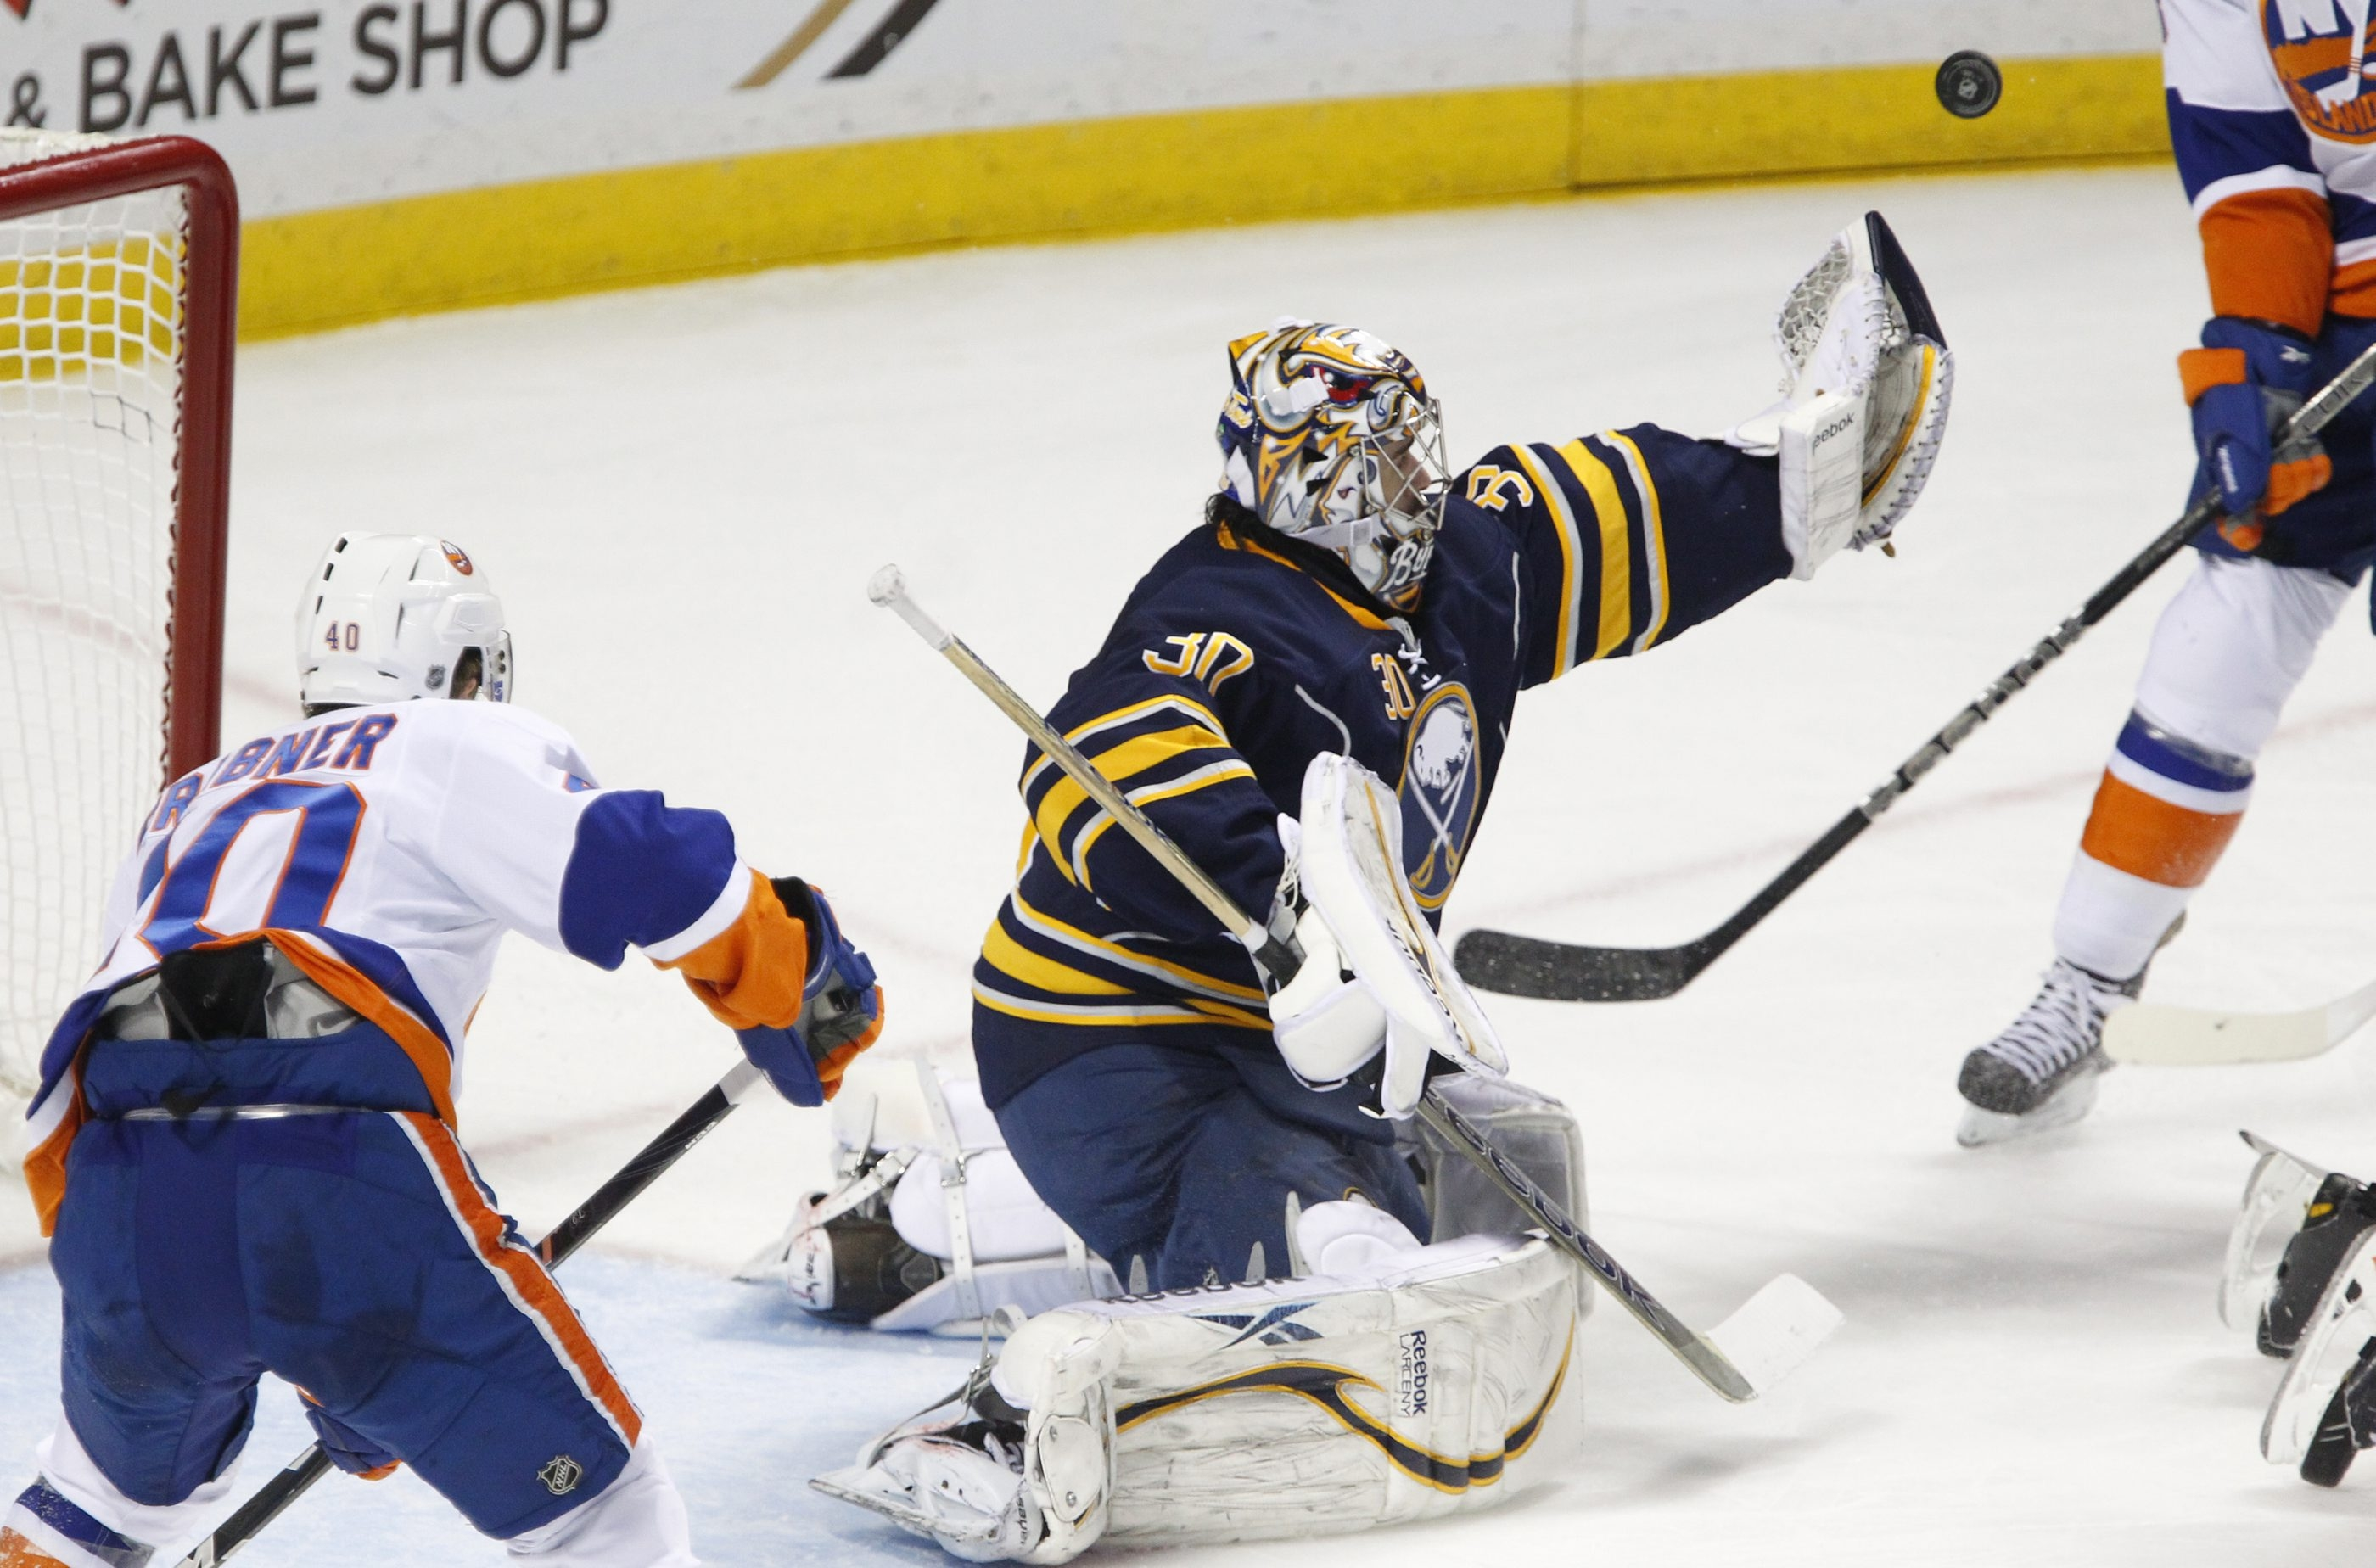 Sabres goalie Ryan Miller makes a save on a New York Islanders player during second-period action at the First Niagara Center.